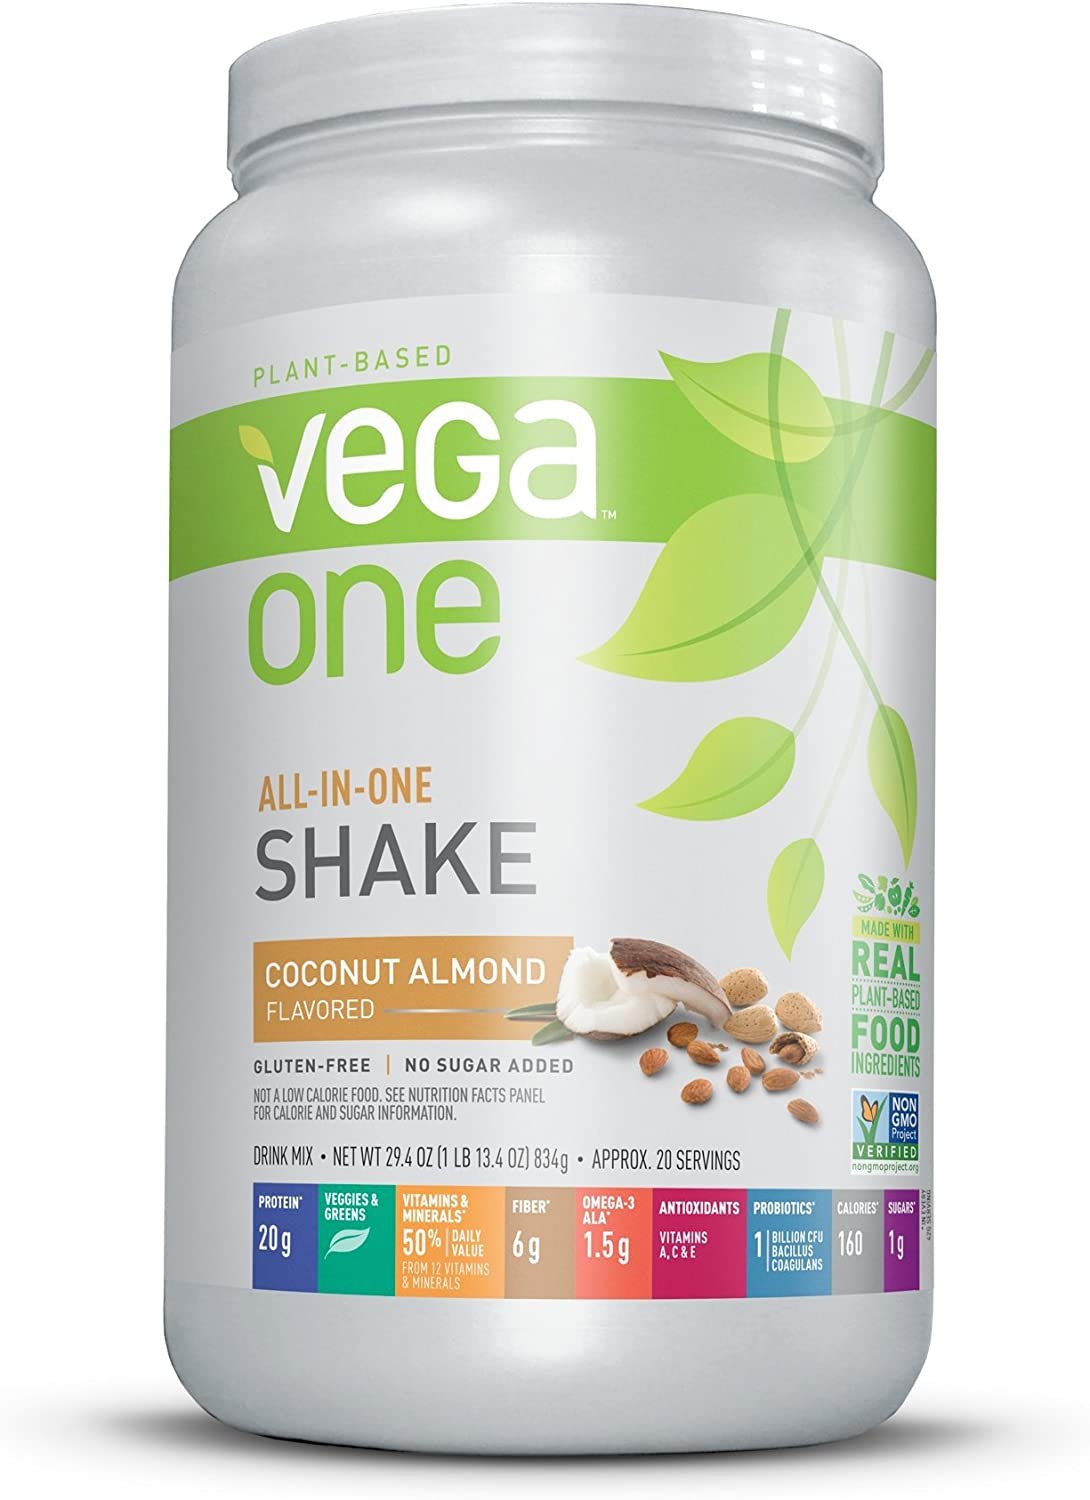 Amazon Com Vega One All In One Nutrition Shake Coconut Almond 20 Servings Plant Based Vegan Protein Powder Non Dairy Gluten Free Non Gmo 29 4 Ounce Pack Of 1 Health Personal Care